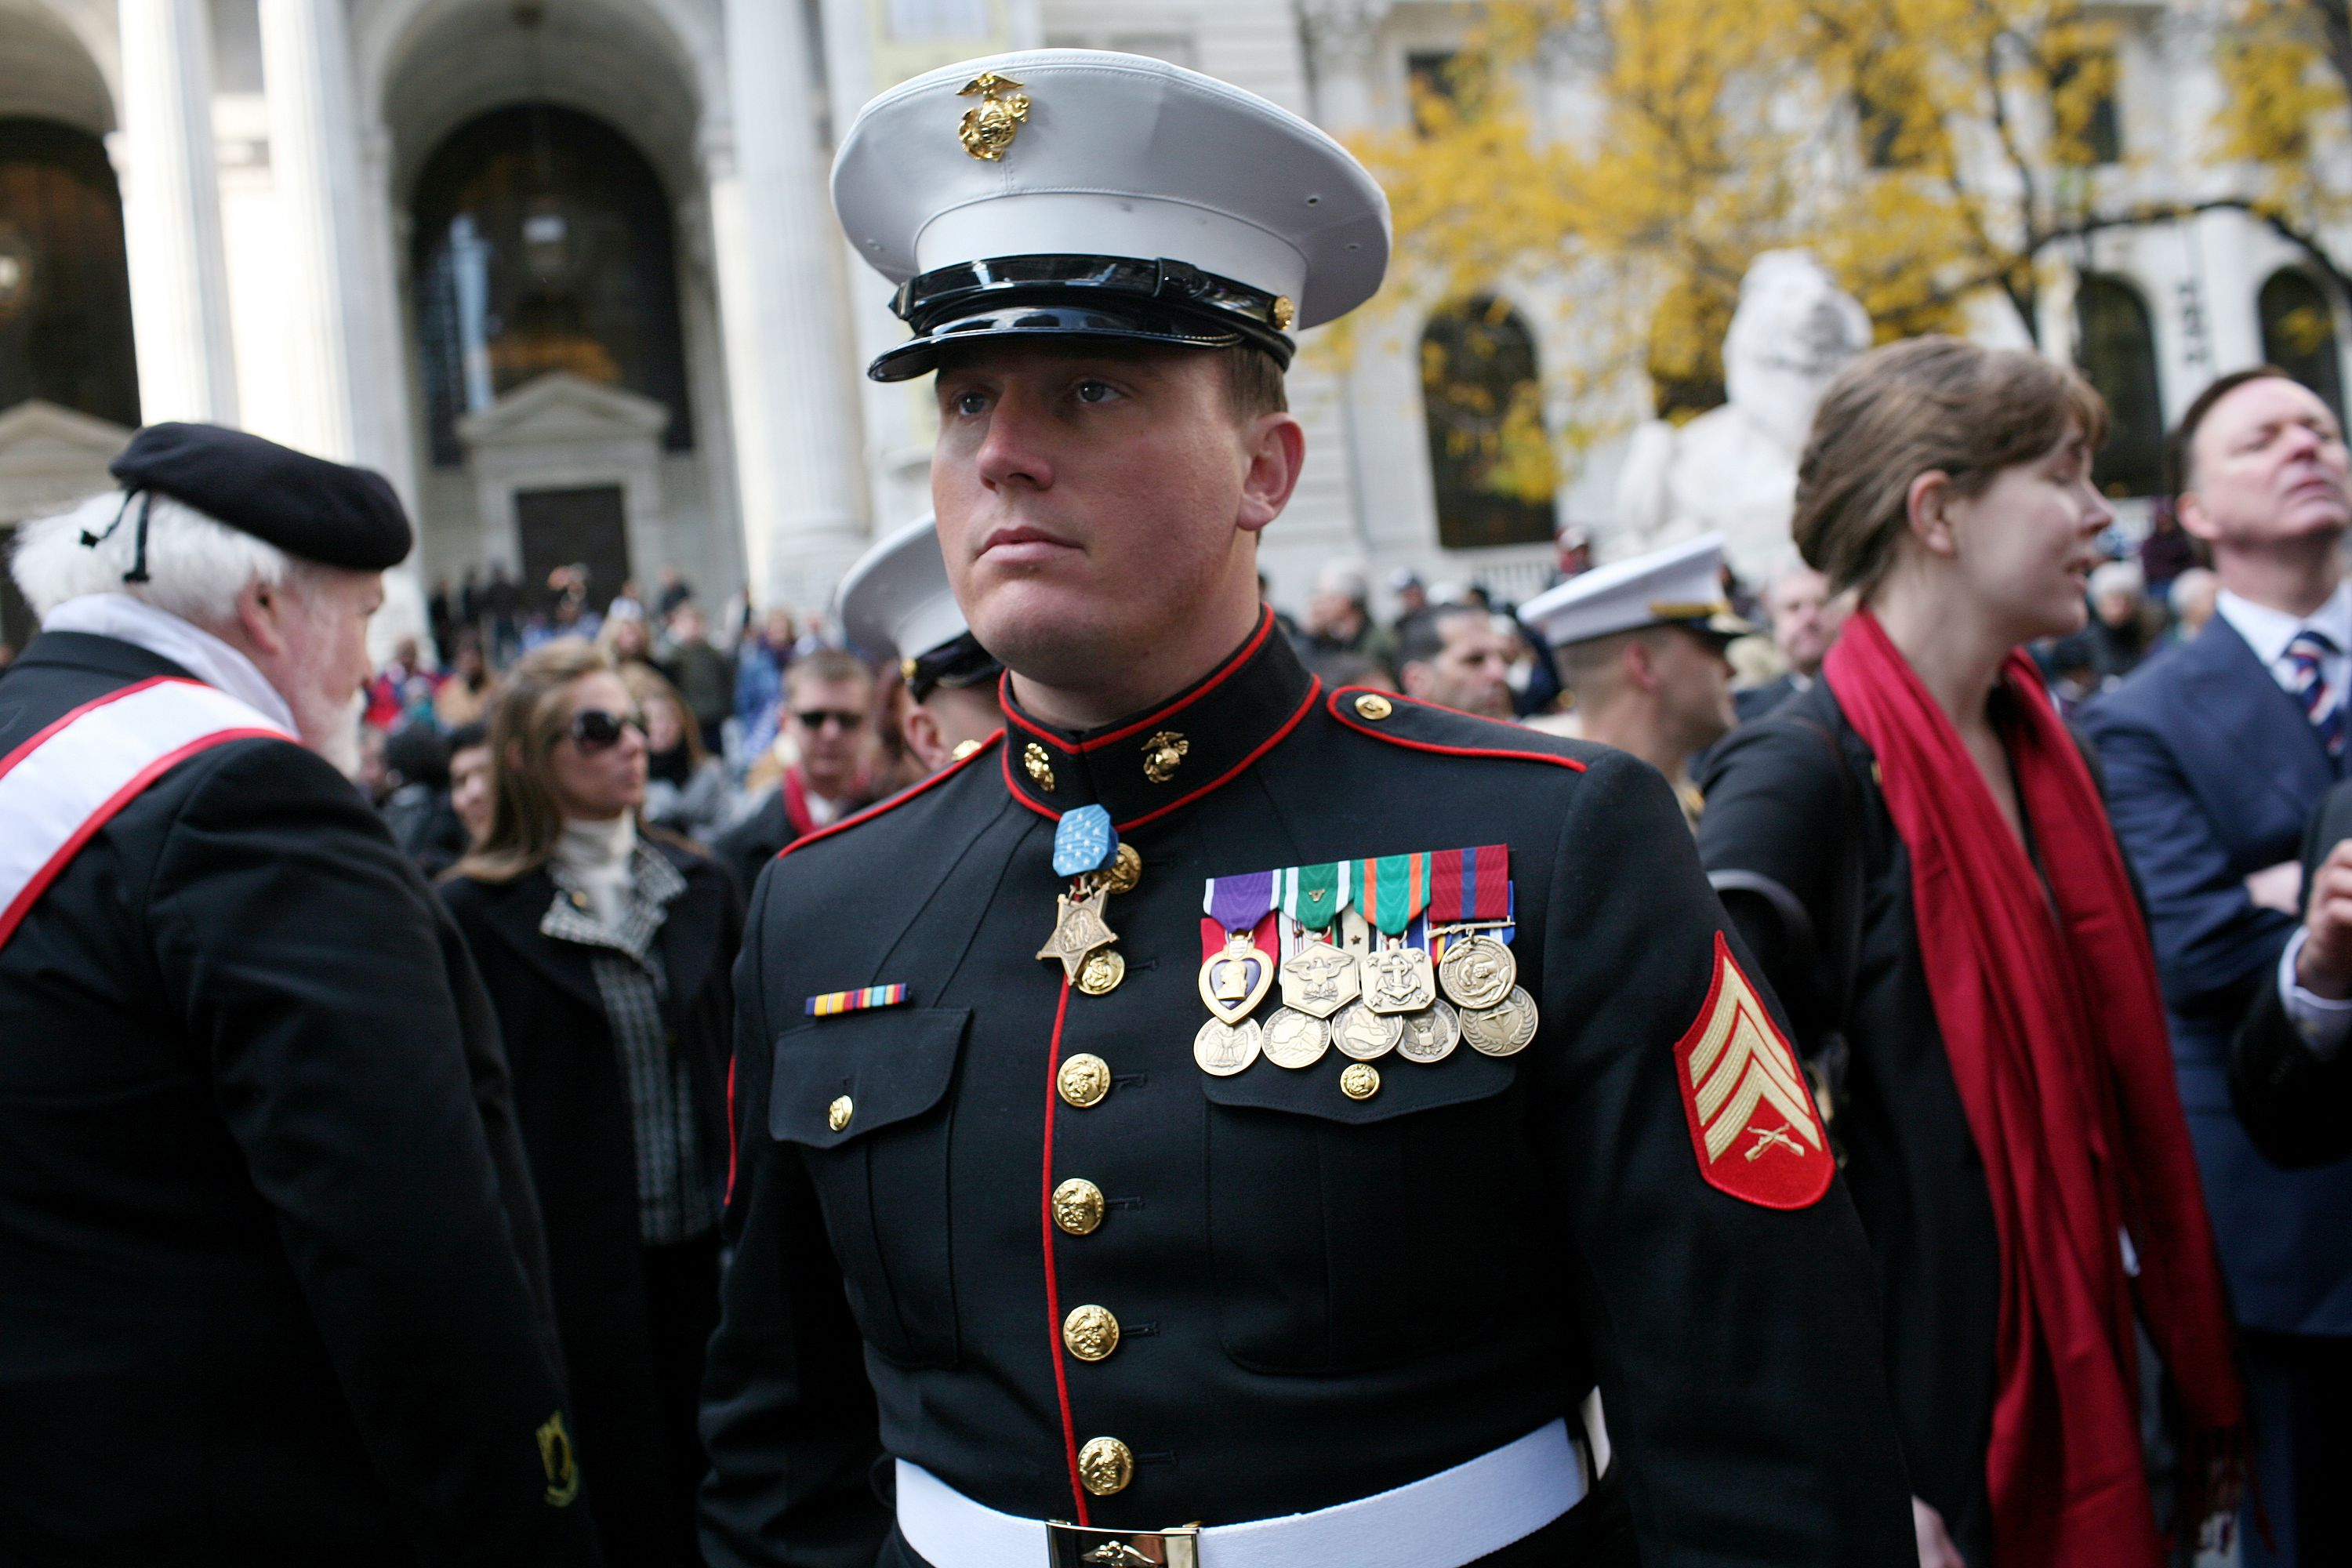 Military Uniform Wear By Retirees And Veterans